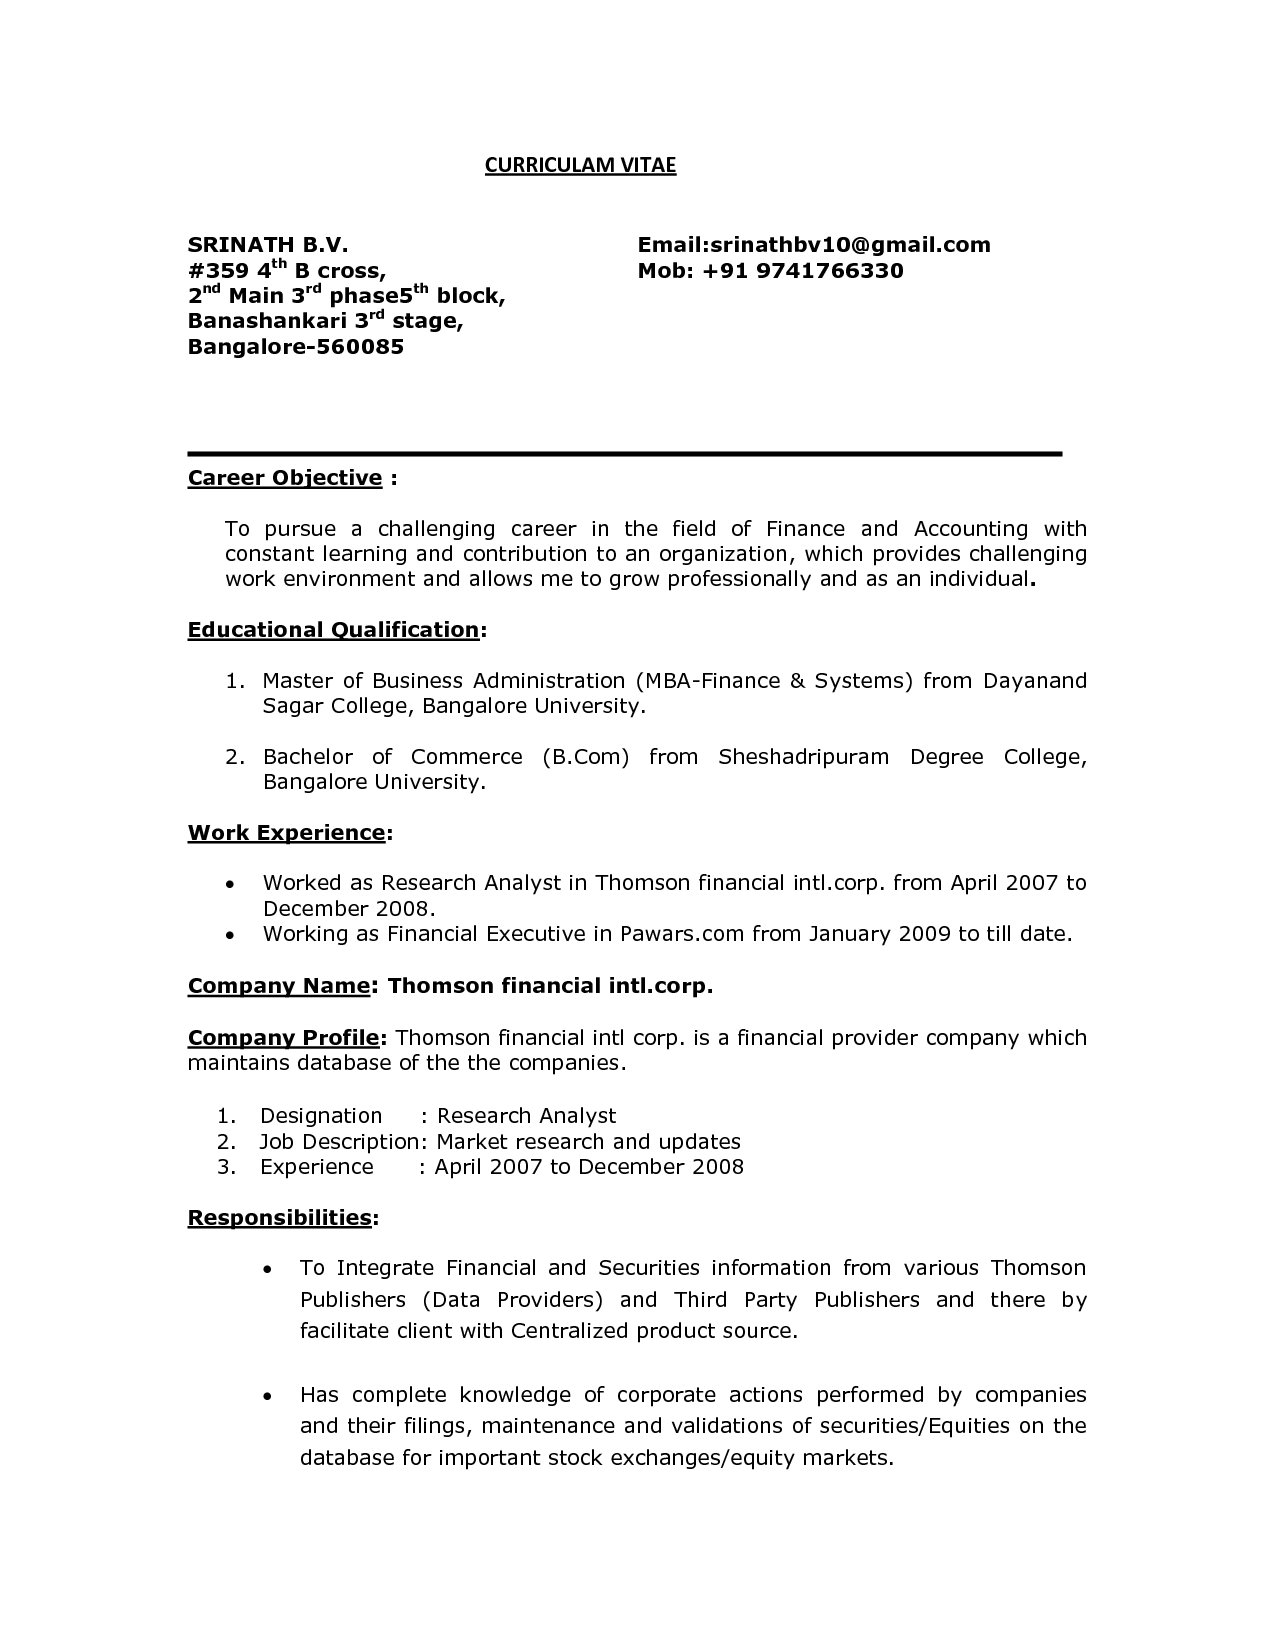 Entry Level Career Objective For Resume For Fresher In Reserach